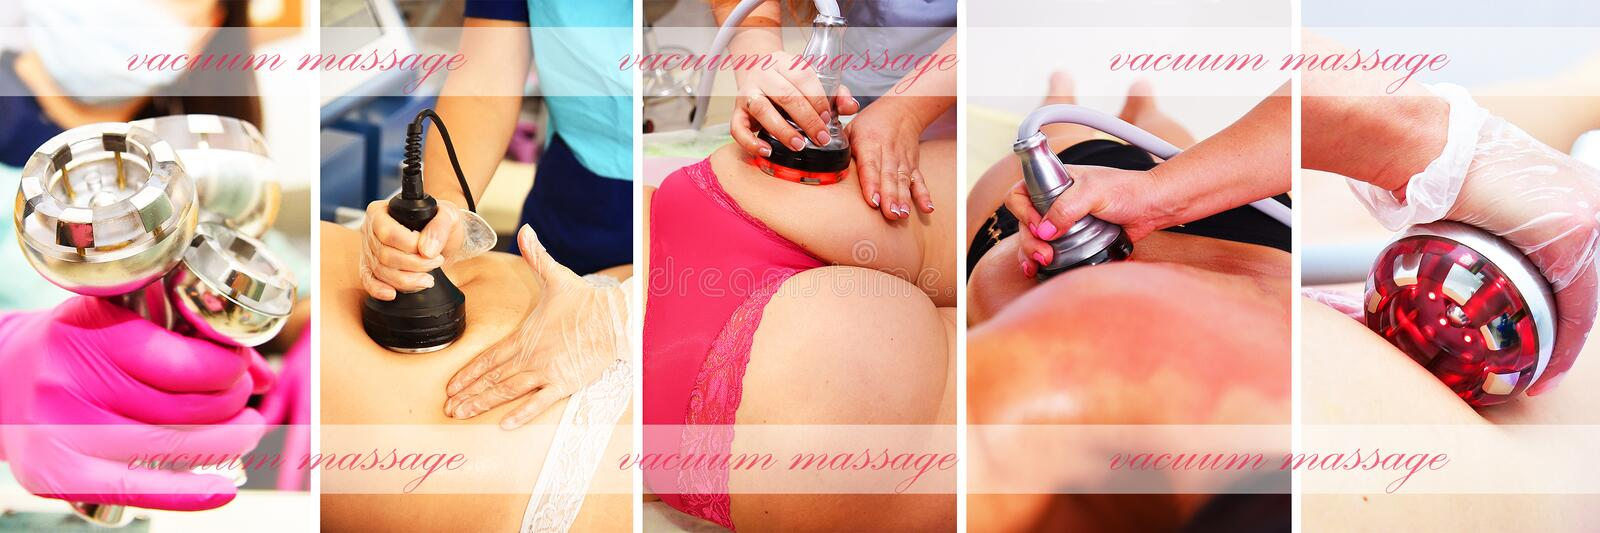 Vacuum massage. Hardware cosmetology. Body care. Non surgical body sculpting. anti-cellulite and anti-fat therapy in beauty salon. Large collage with different stock photos